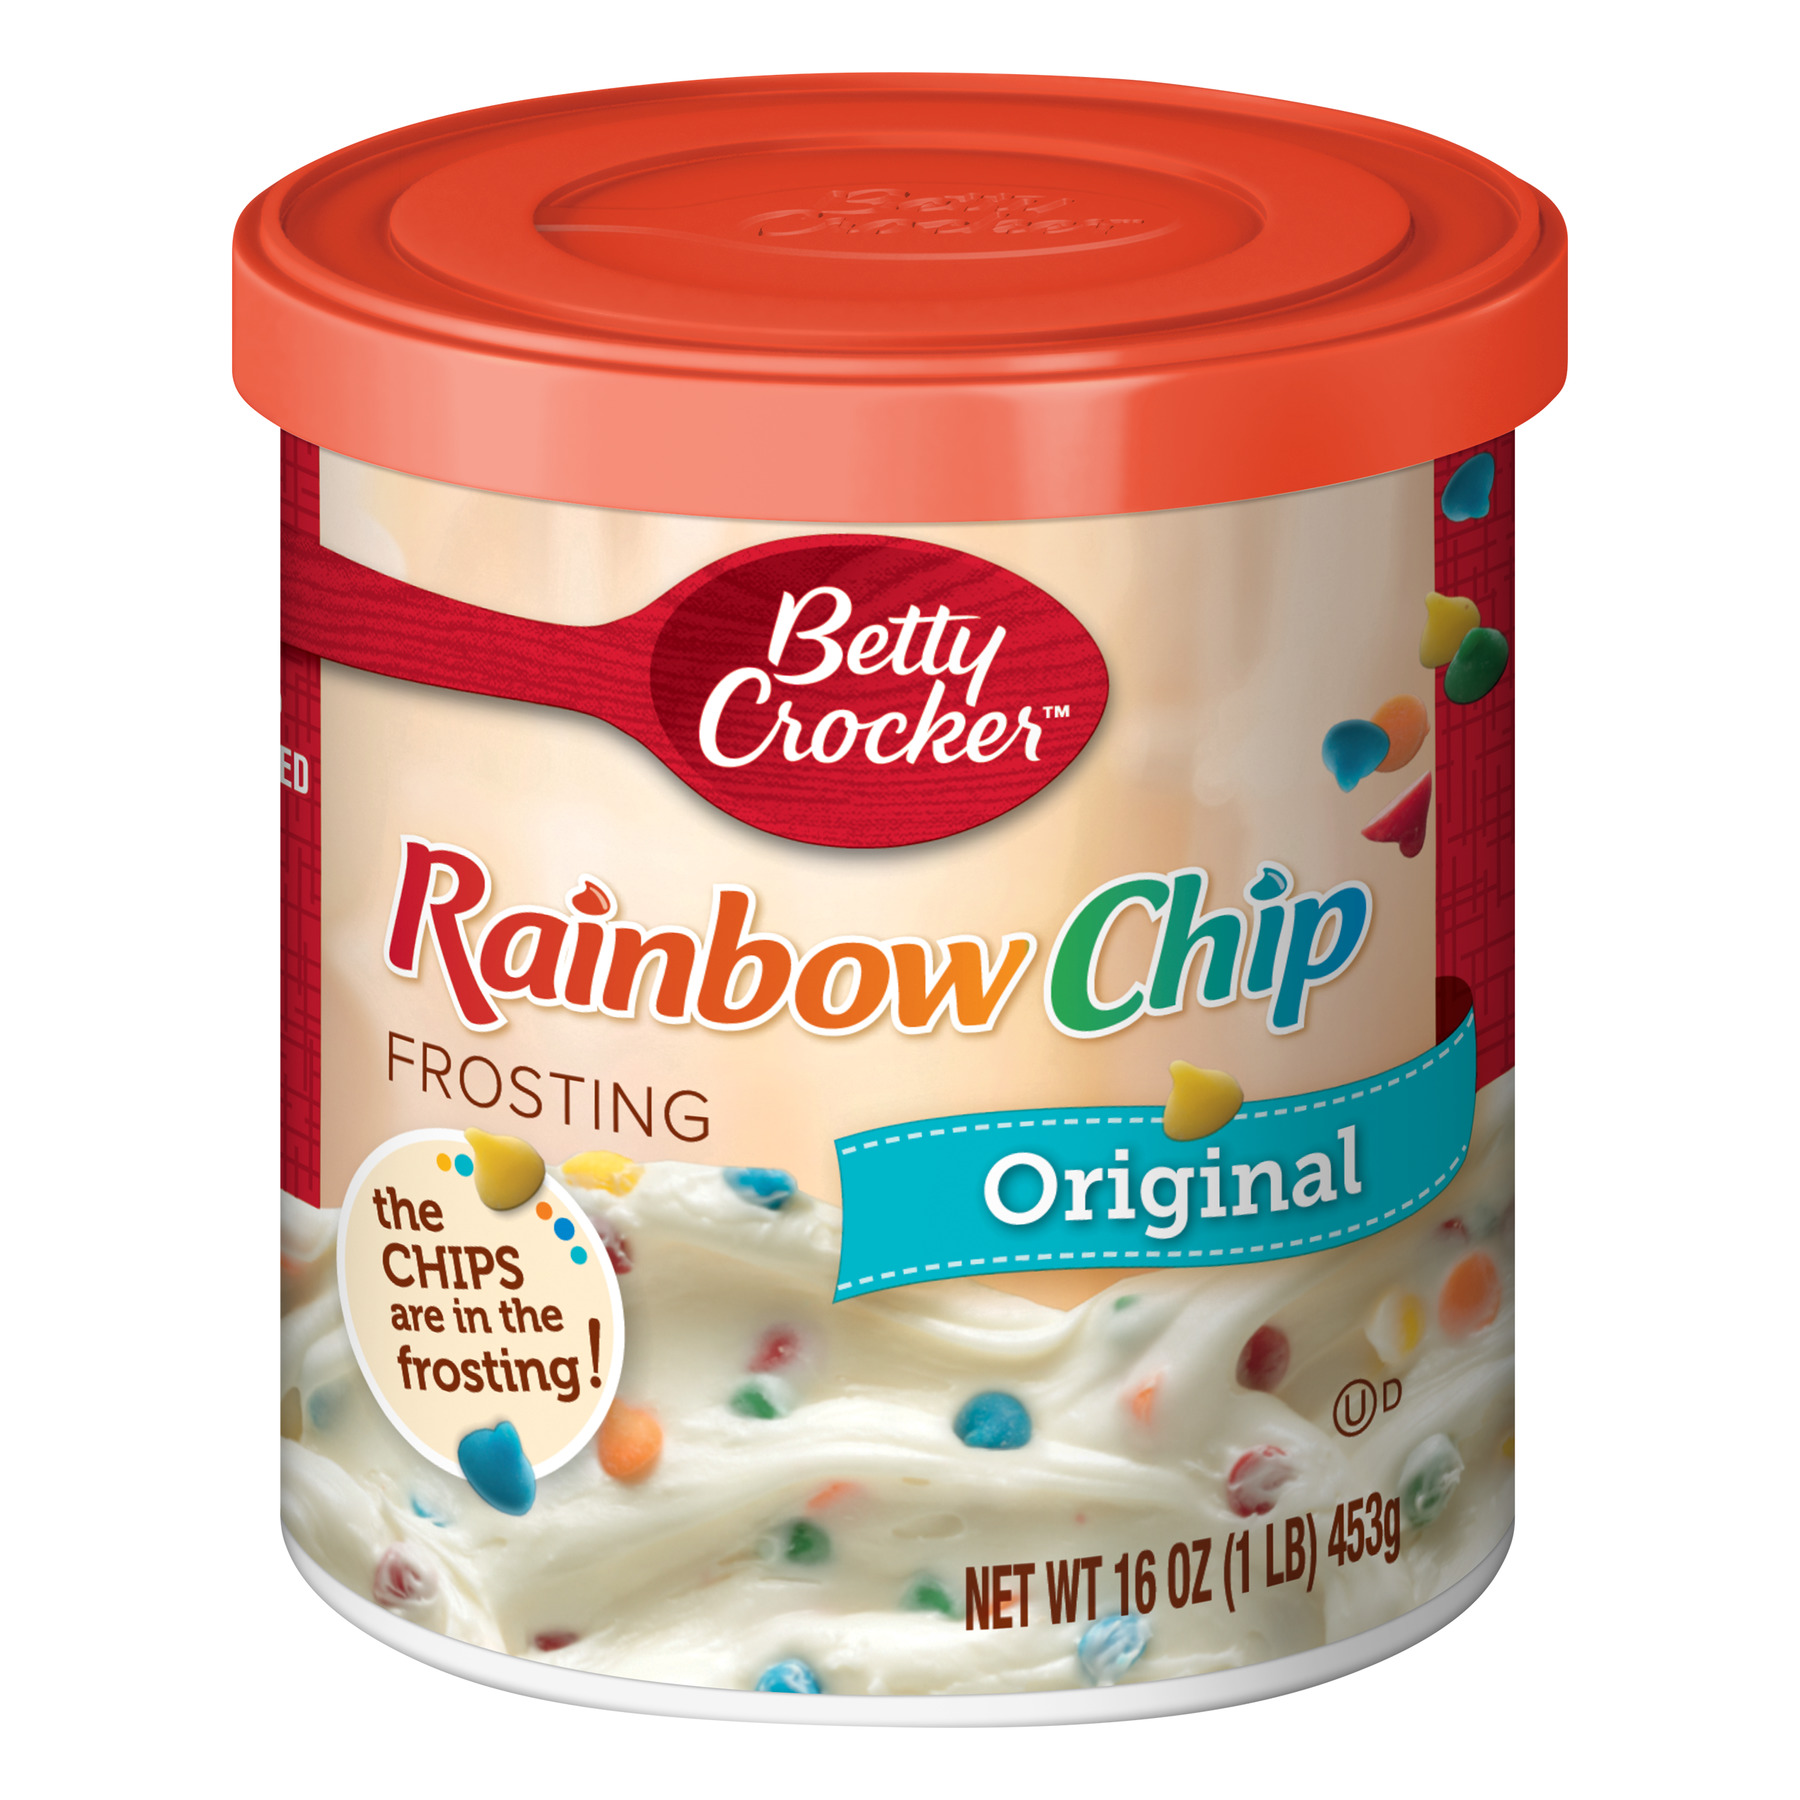 Betty Crocker Original Rainbow Chip Frosting, 16 oz